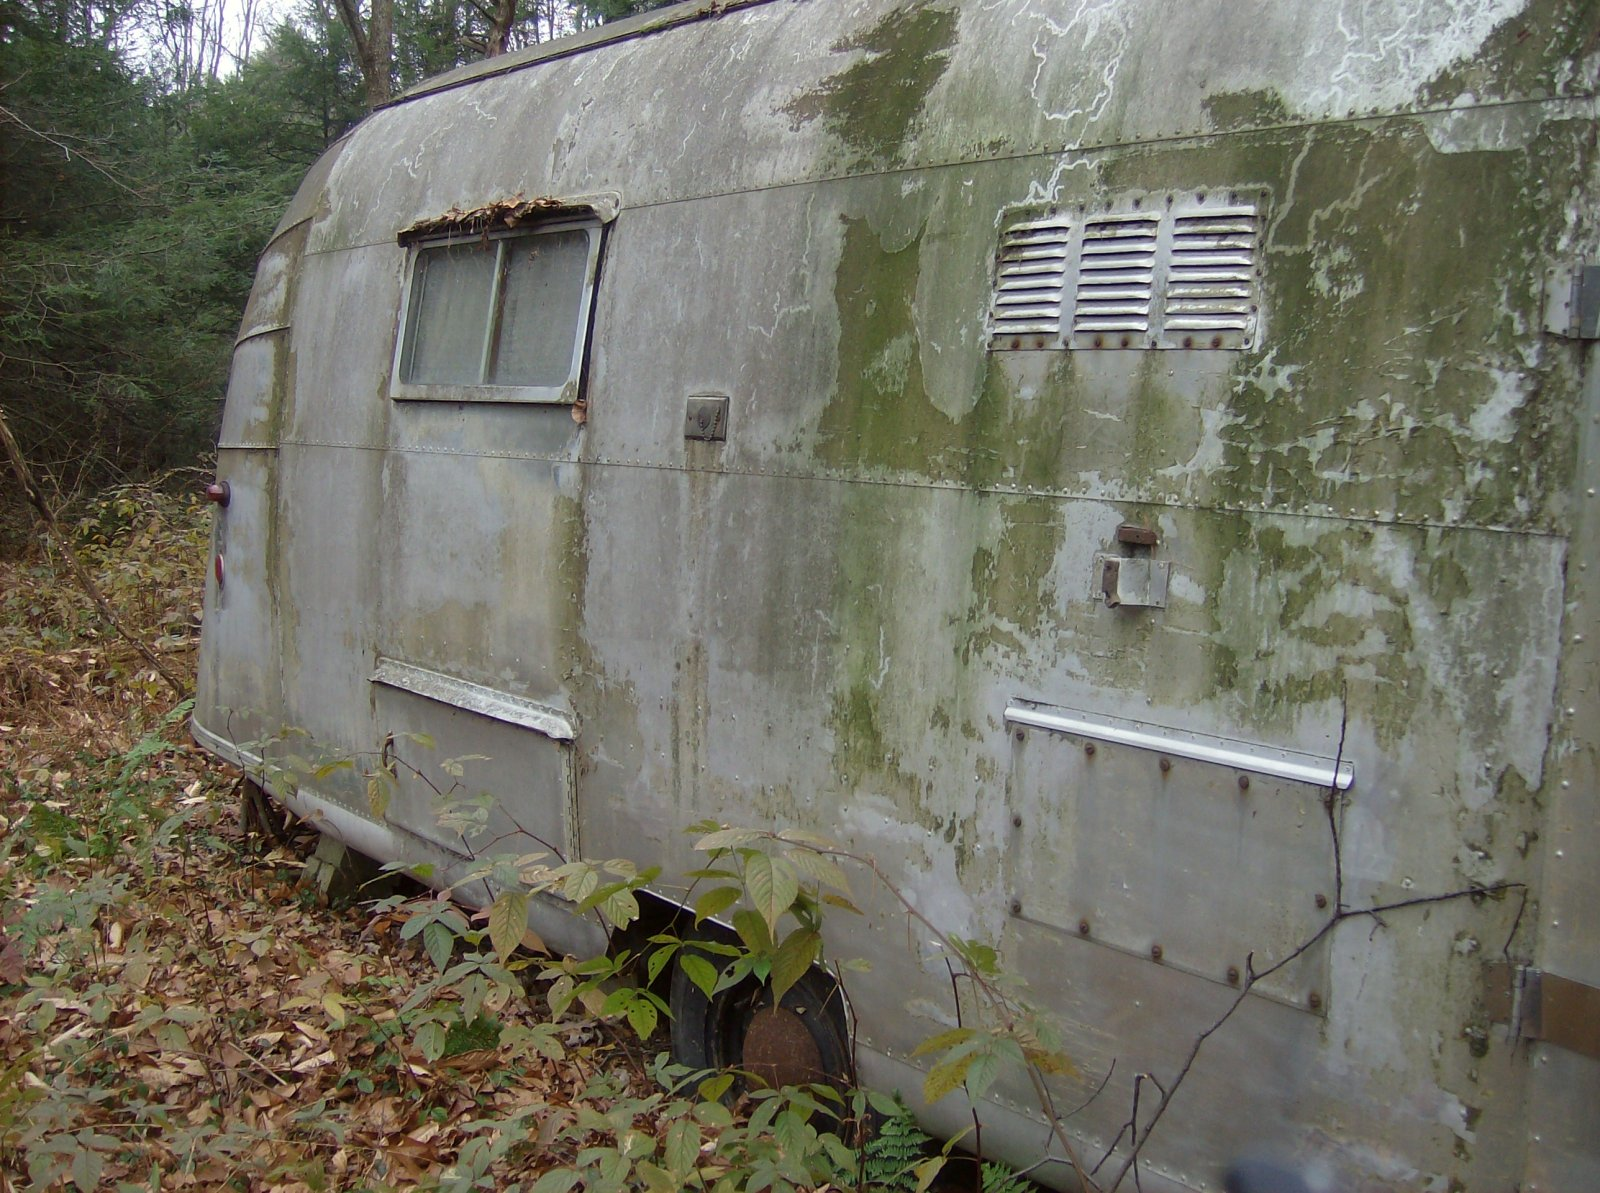 Click image for larger version  Name:airstream 002.jpg Views:94 Size:412.6 KB ID:90609